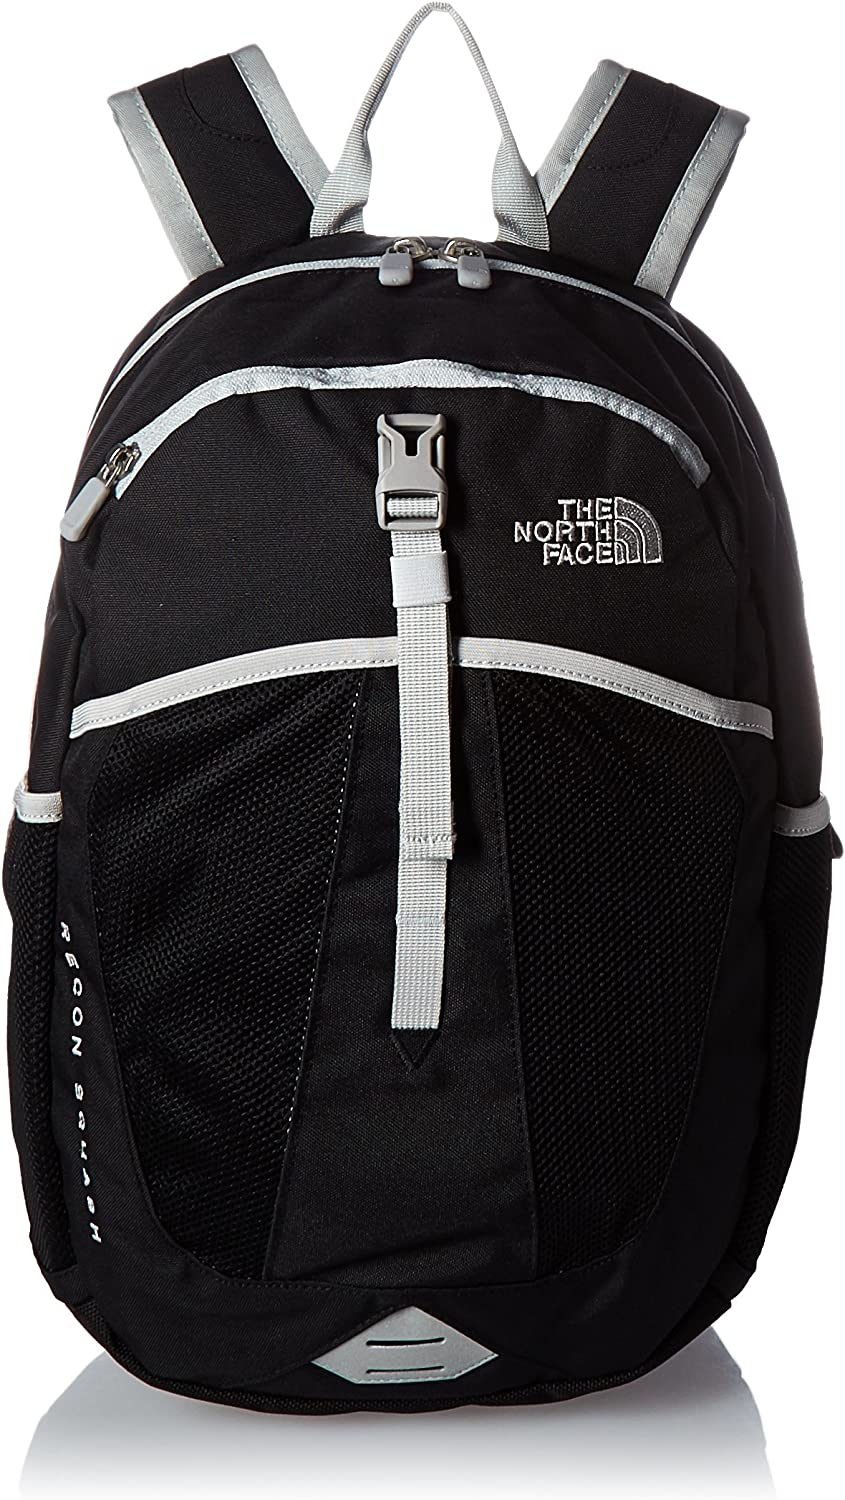 The North Face Youth Recon Squash